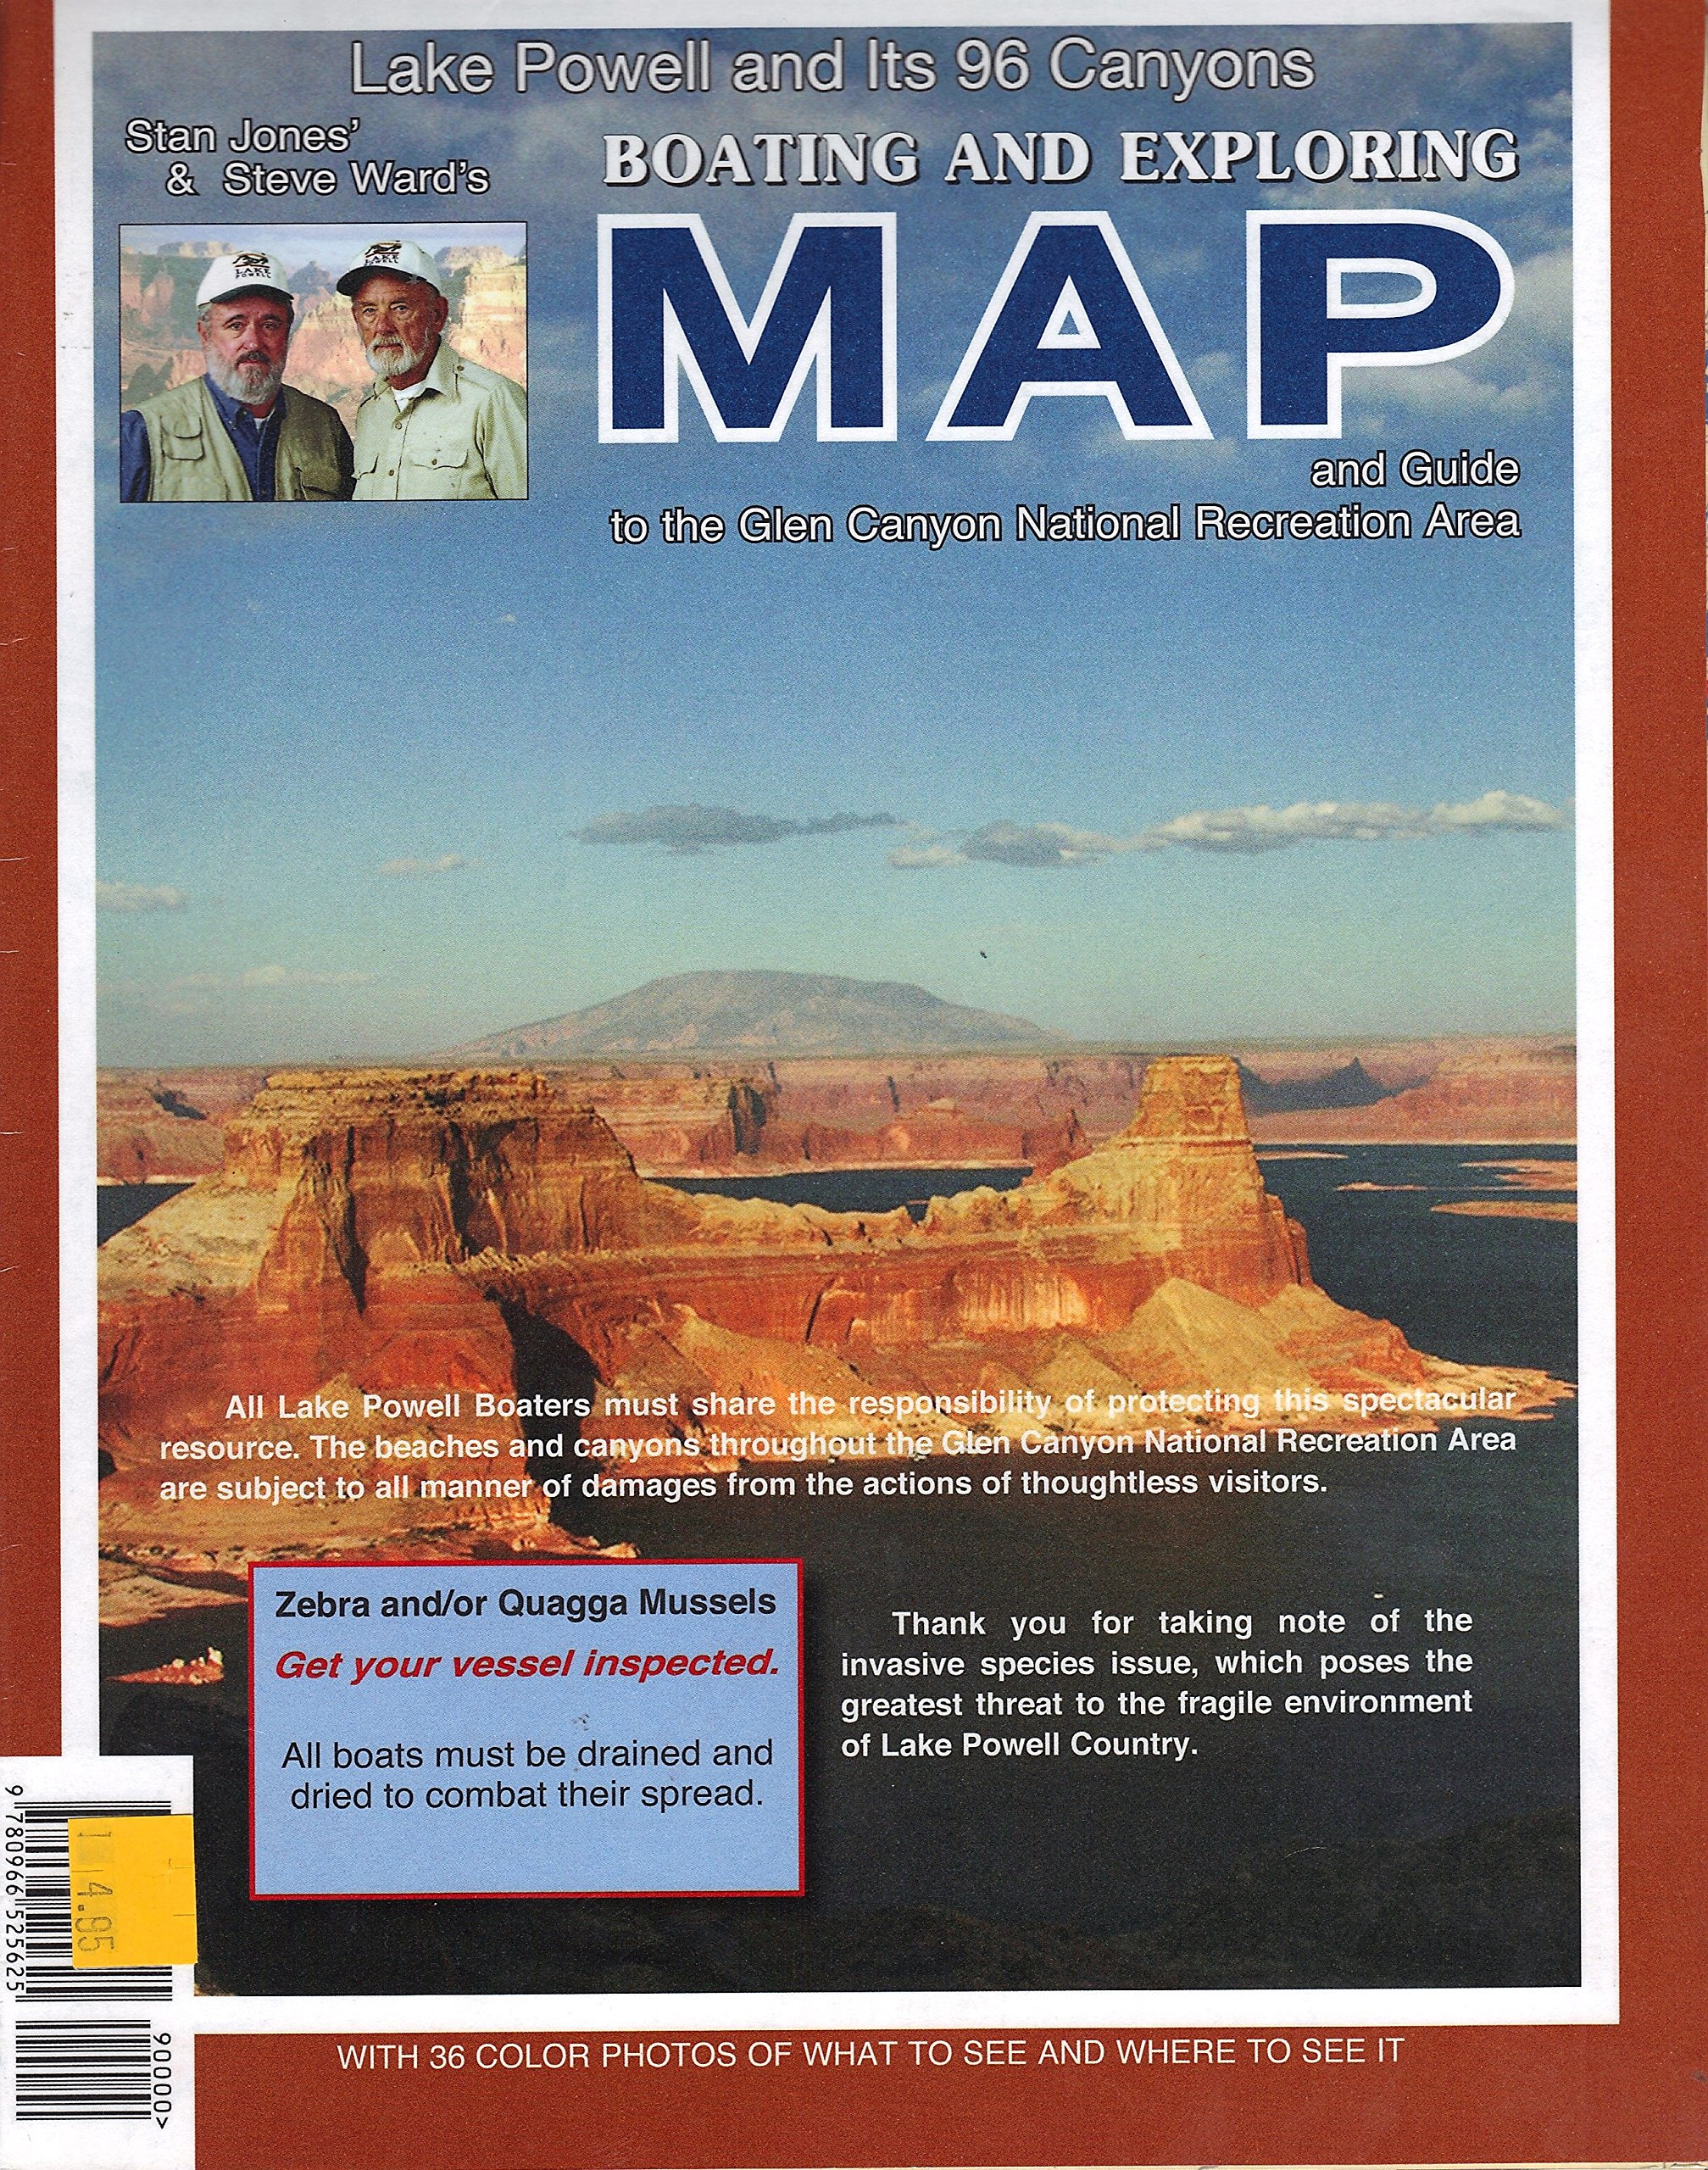 Amazon.com: Lake Powell and Its 96 Canyons Boating and ... on map of russia and neighboring countries, map of afghanistan and surrounding countries, map of chernobyl, map of st. moritz, map of san francisco, map of rothenburg, map of stuttgart, map of europe and middle east, map of tyrol, map of switzerland, map of swiss alps, map of atlanta, map of asia, map of la chaux-de-fonds, map of world, map of cambridge, map of fribourg, map of winterthur, map of basel, map of geneva,